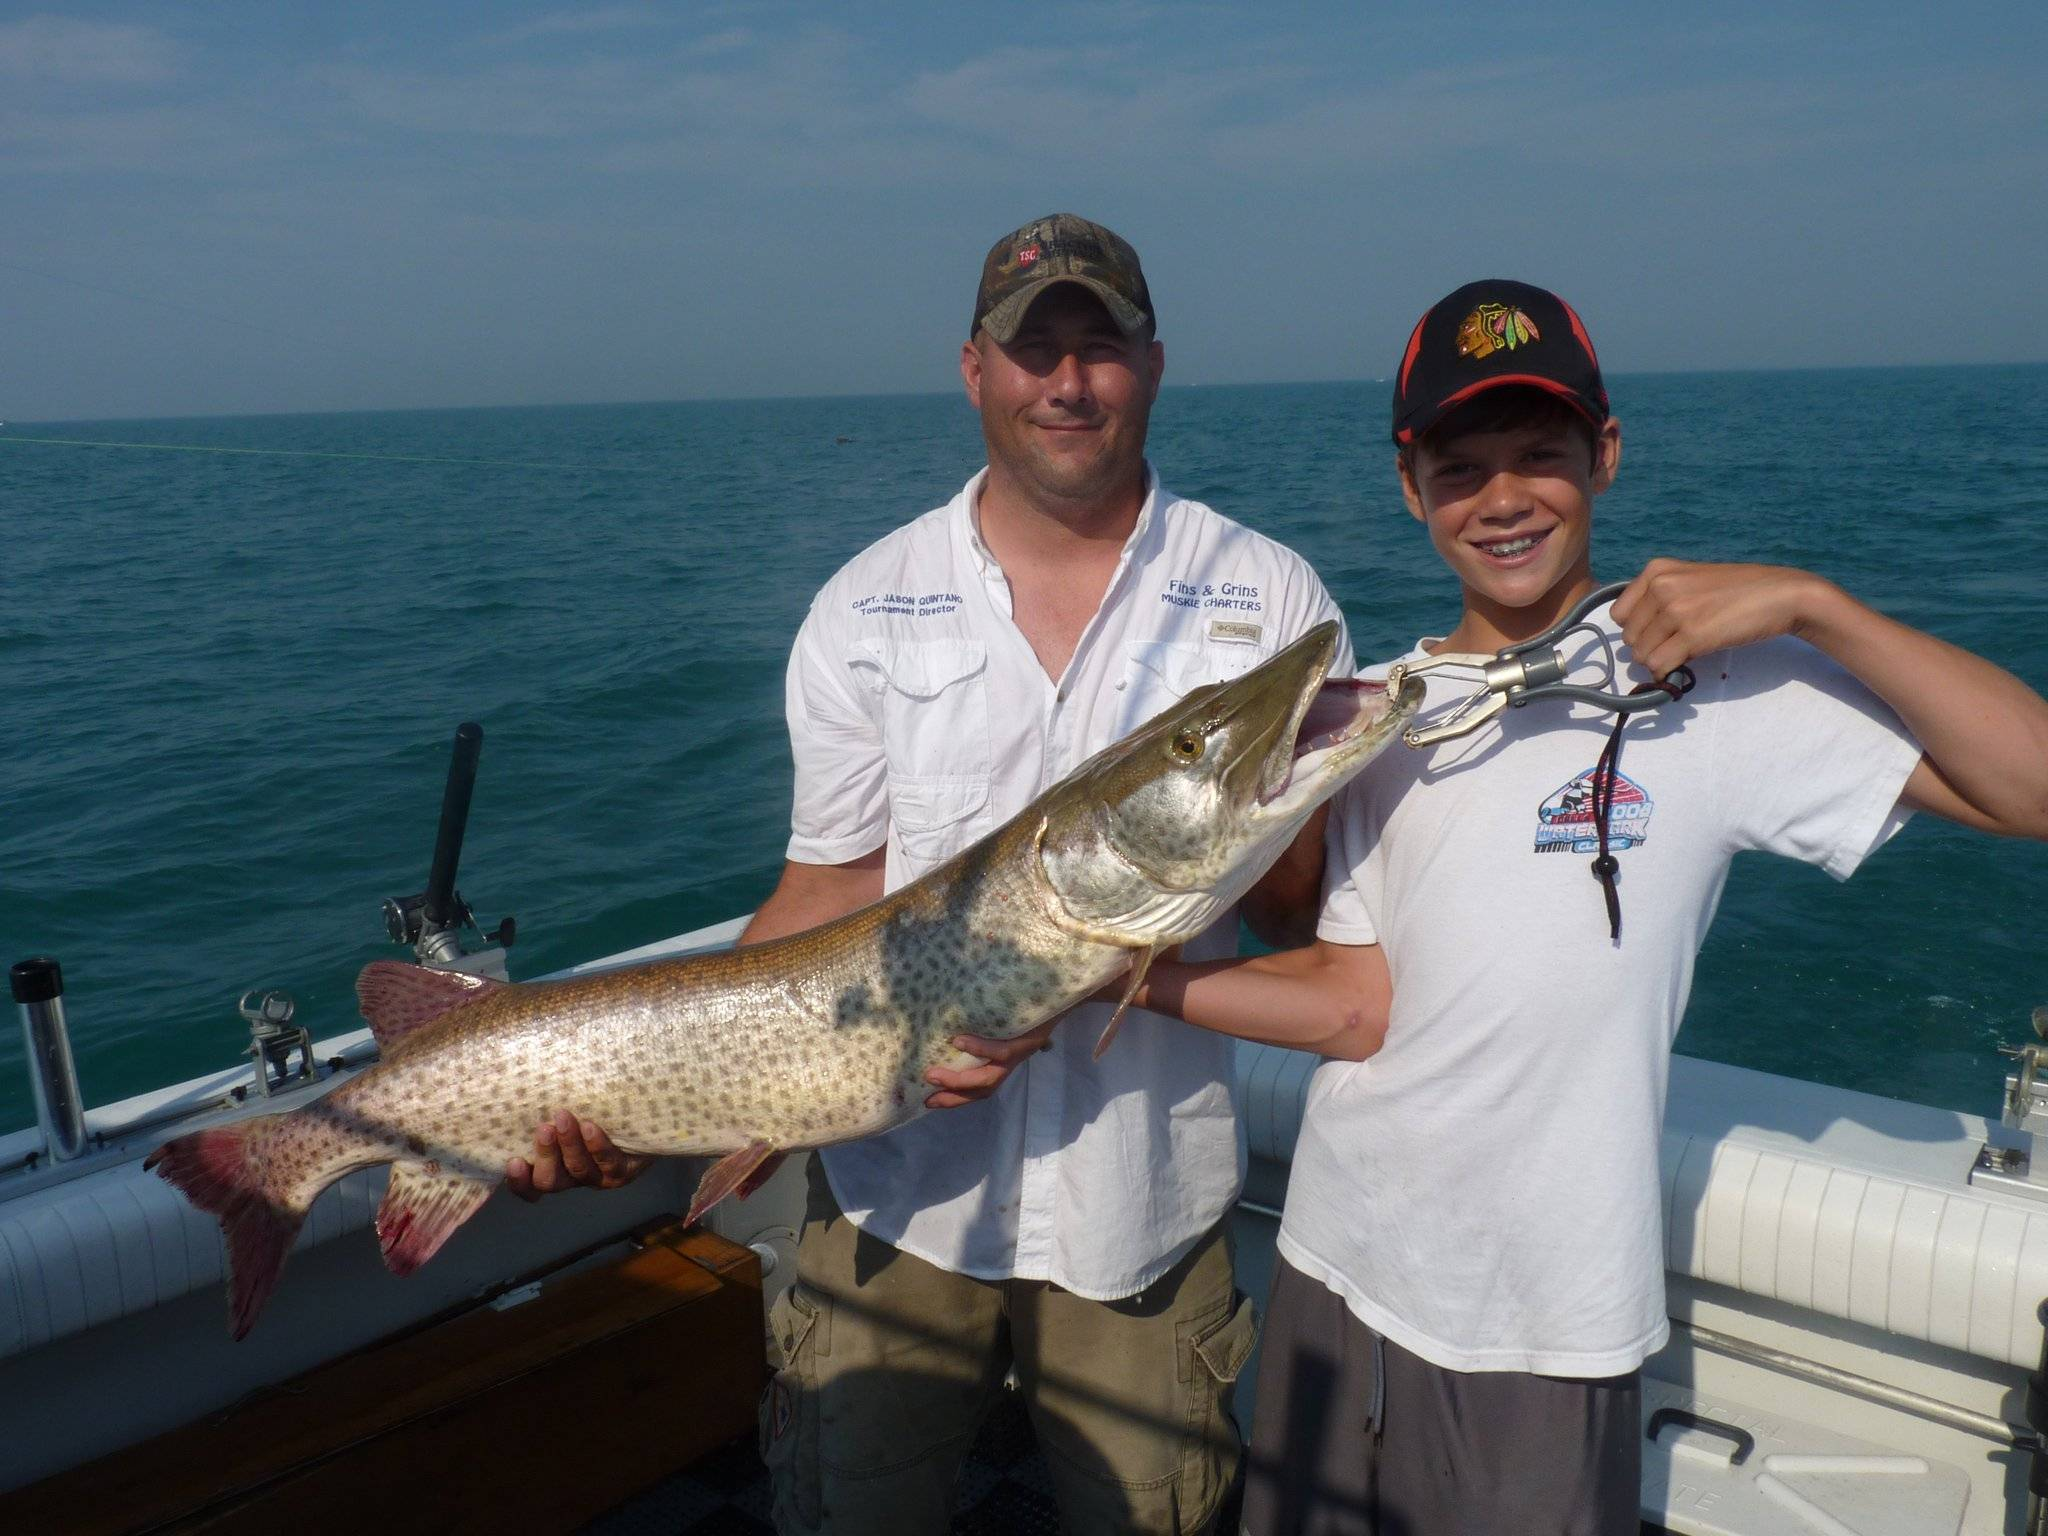 Fins & Grins Muskie Charters